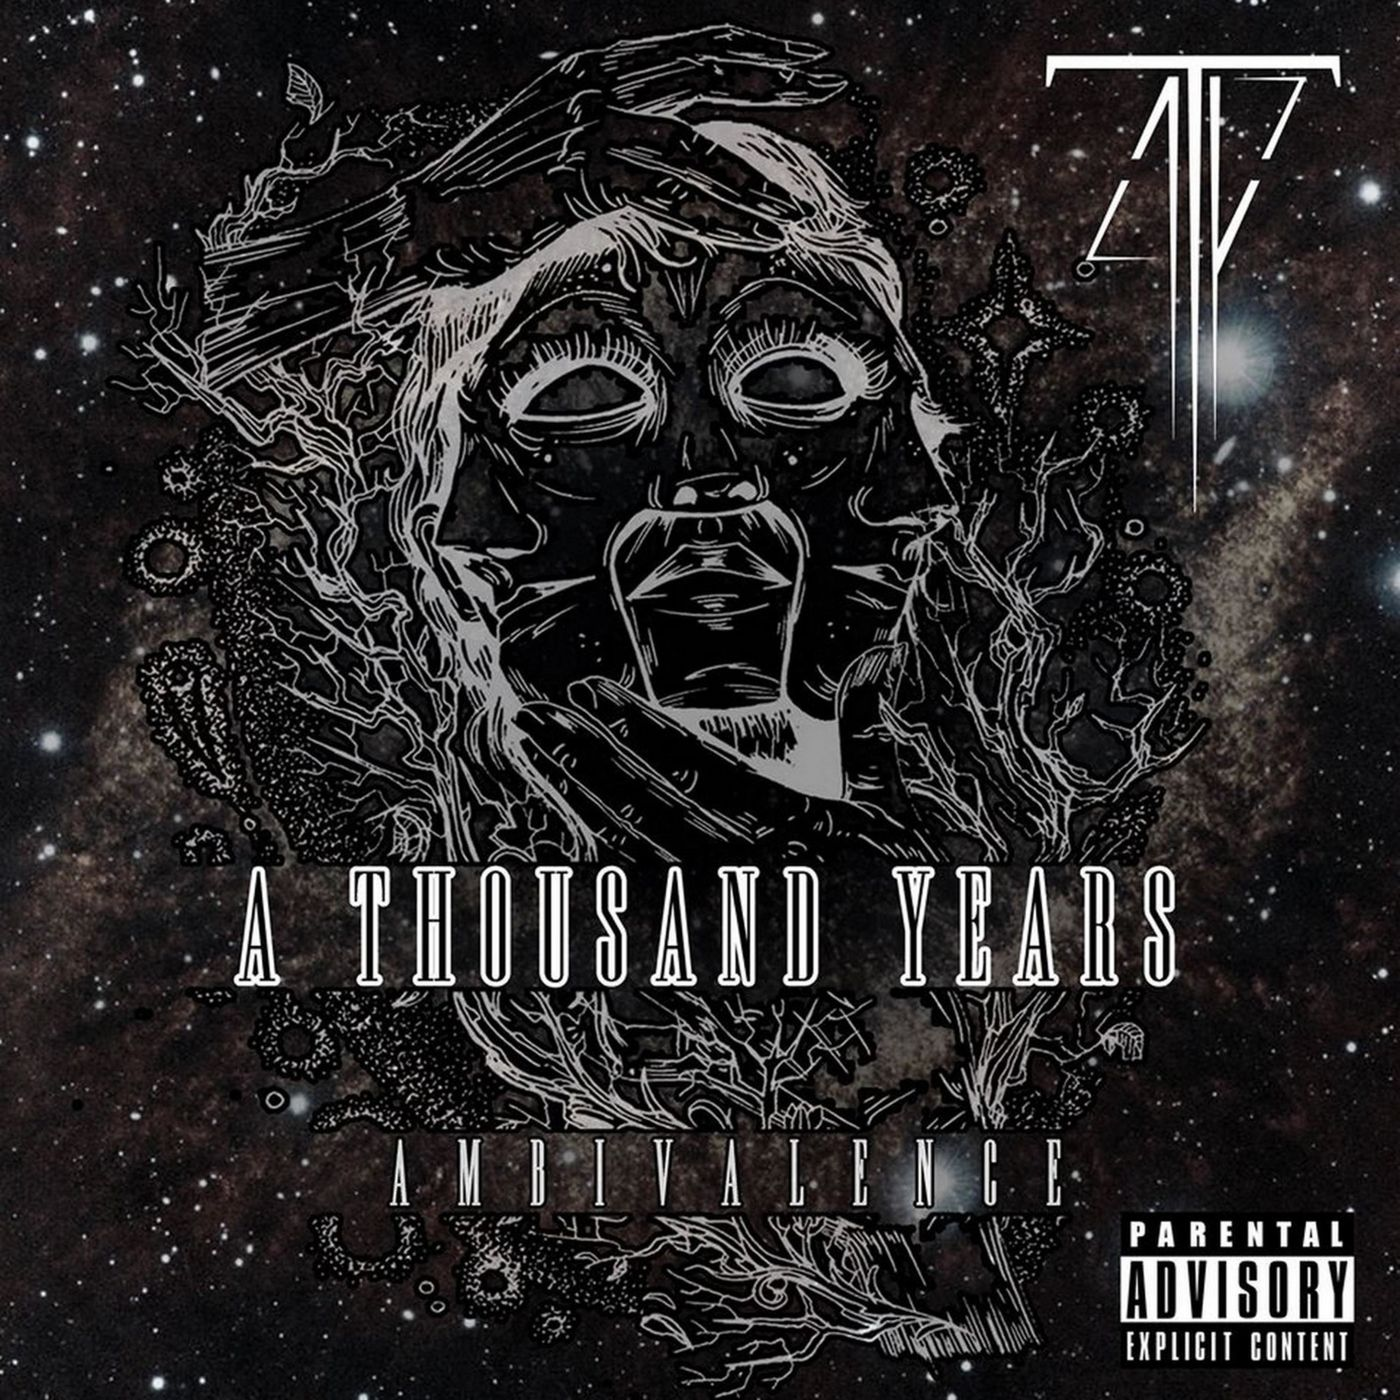 A Thousand Years - Ambivalence [single] (2016)